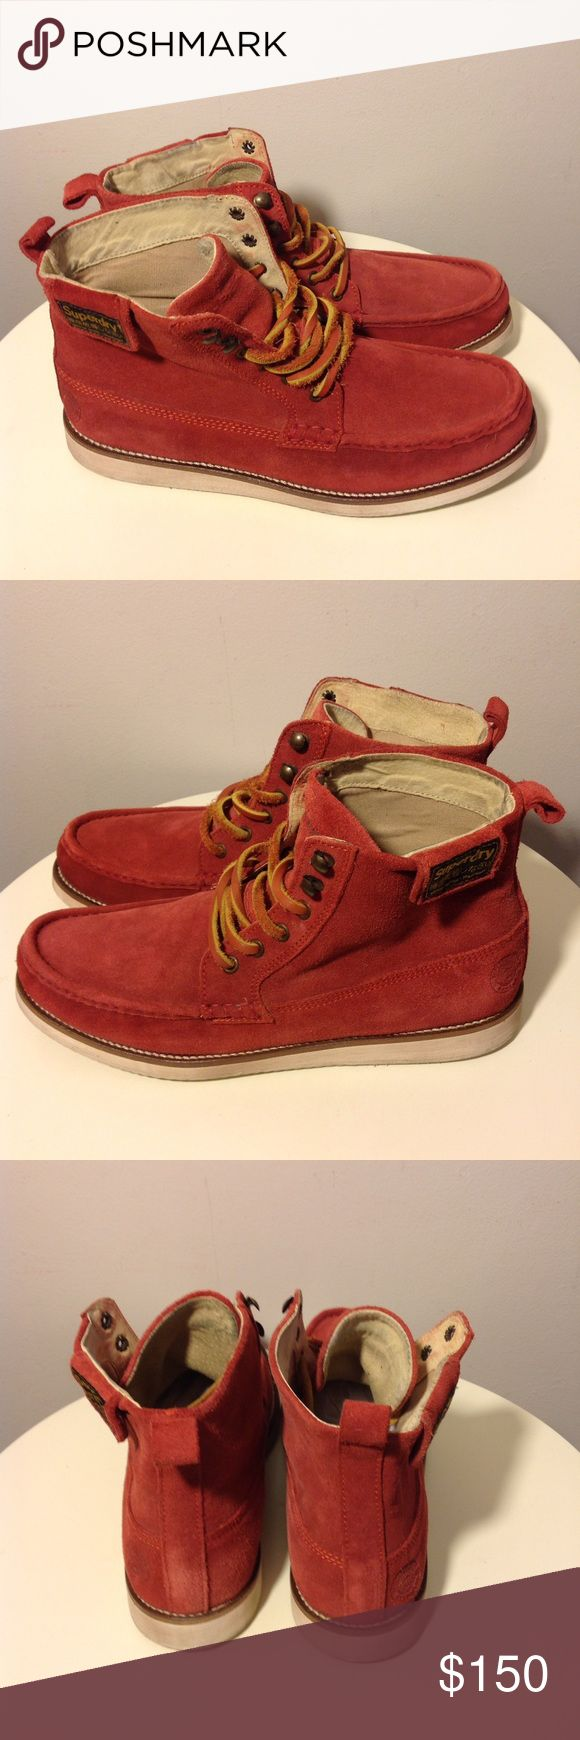 """Superdry Suede Trapper Boots Men's Sz 10/44 Great pre-owned condition  Suede ankle boots in """"Rojo Rust"""" (rusty red) Eyelet and speed lace fastening Fold over ankle patch with snaps Contrast manmade sole Embossed heel logo Men's size 10 US / EU 44 Superdry Shoes Chukka Boots"""